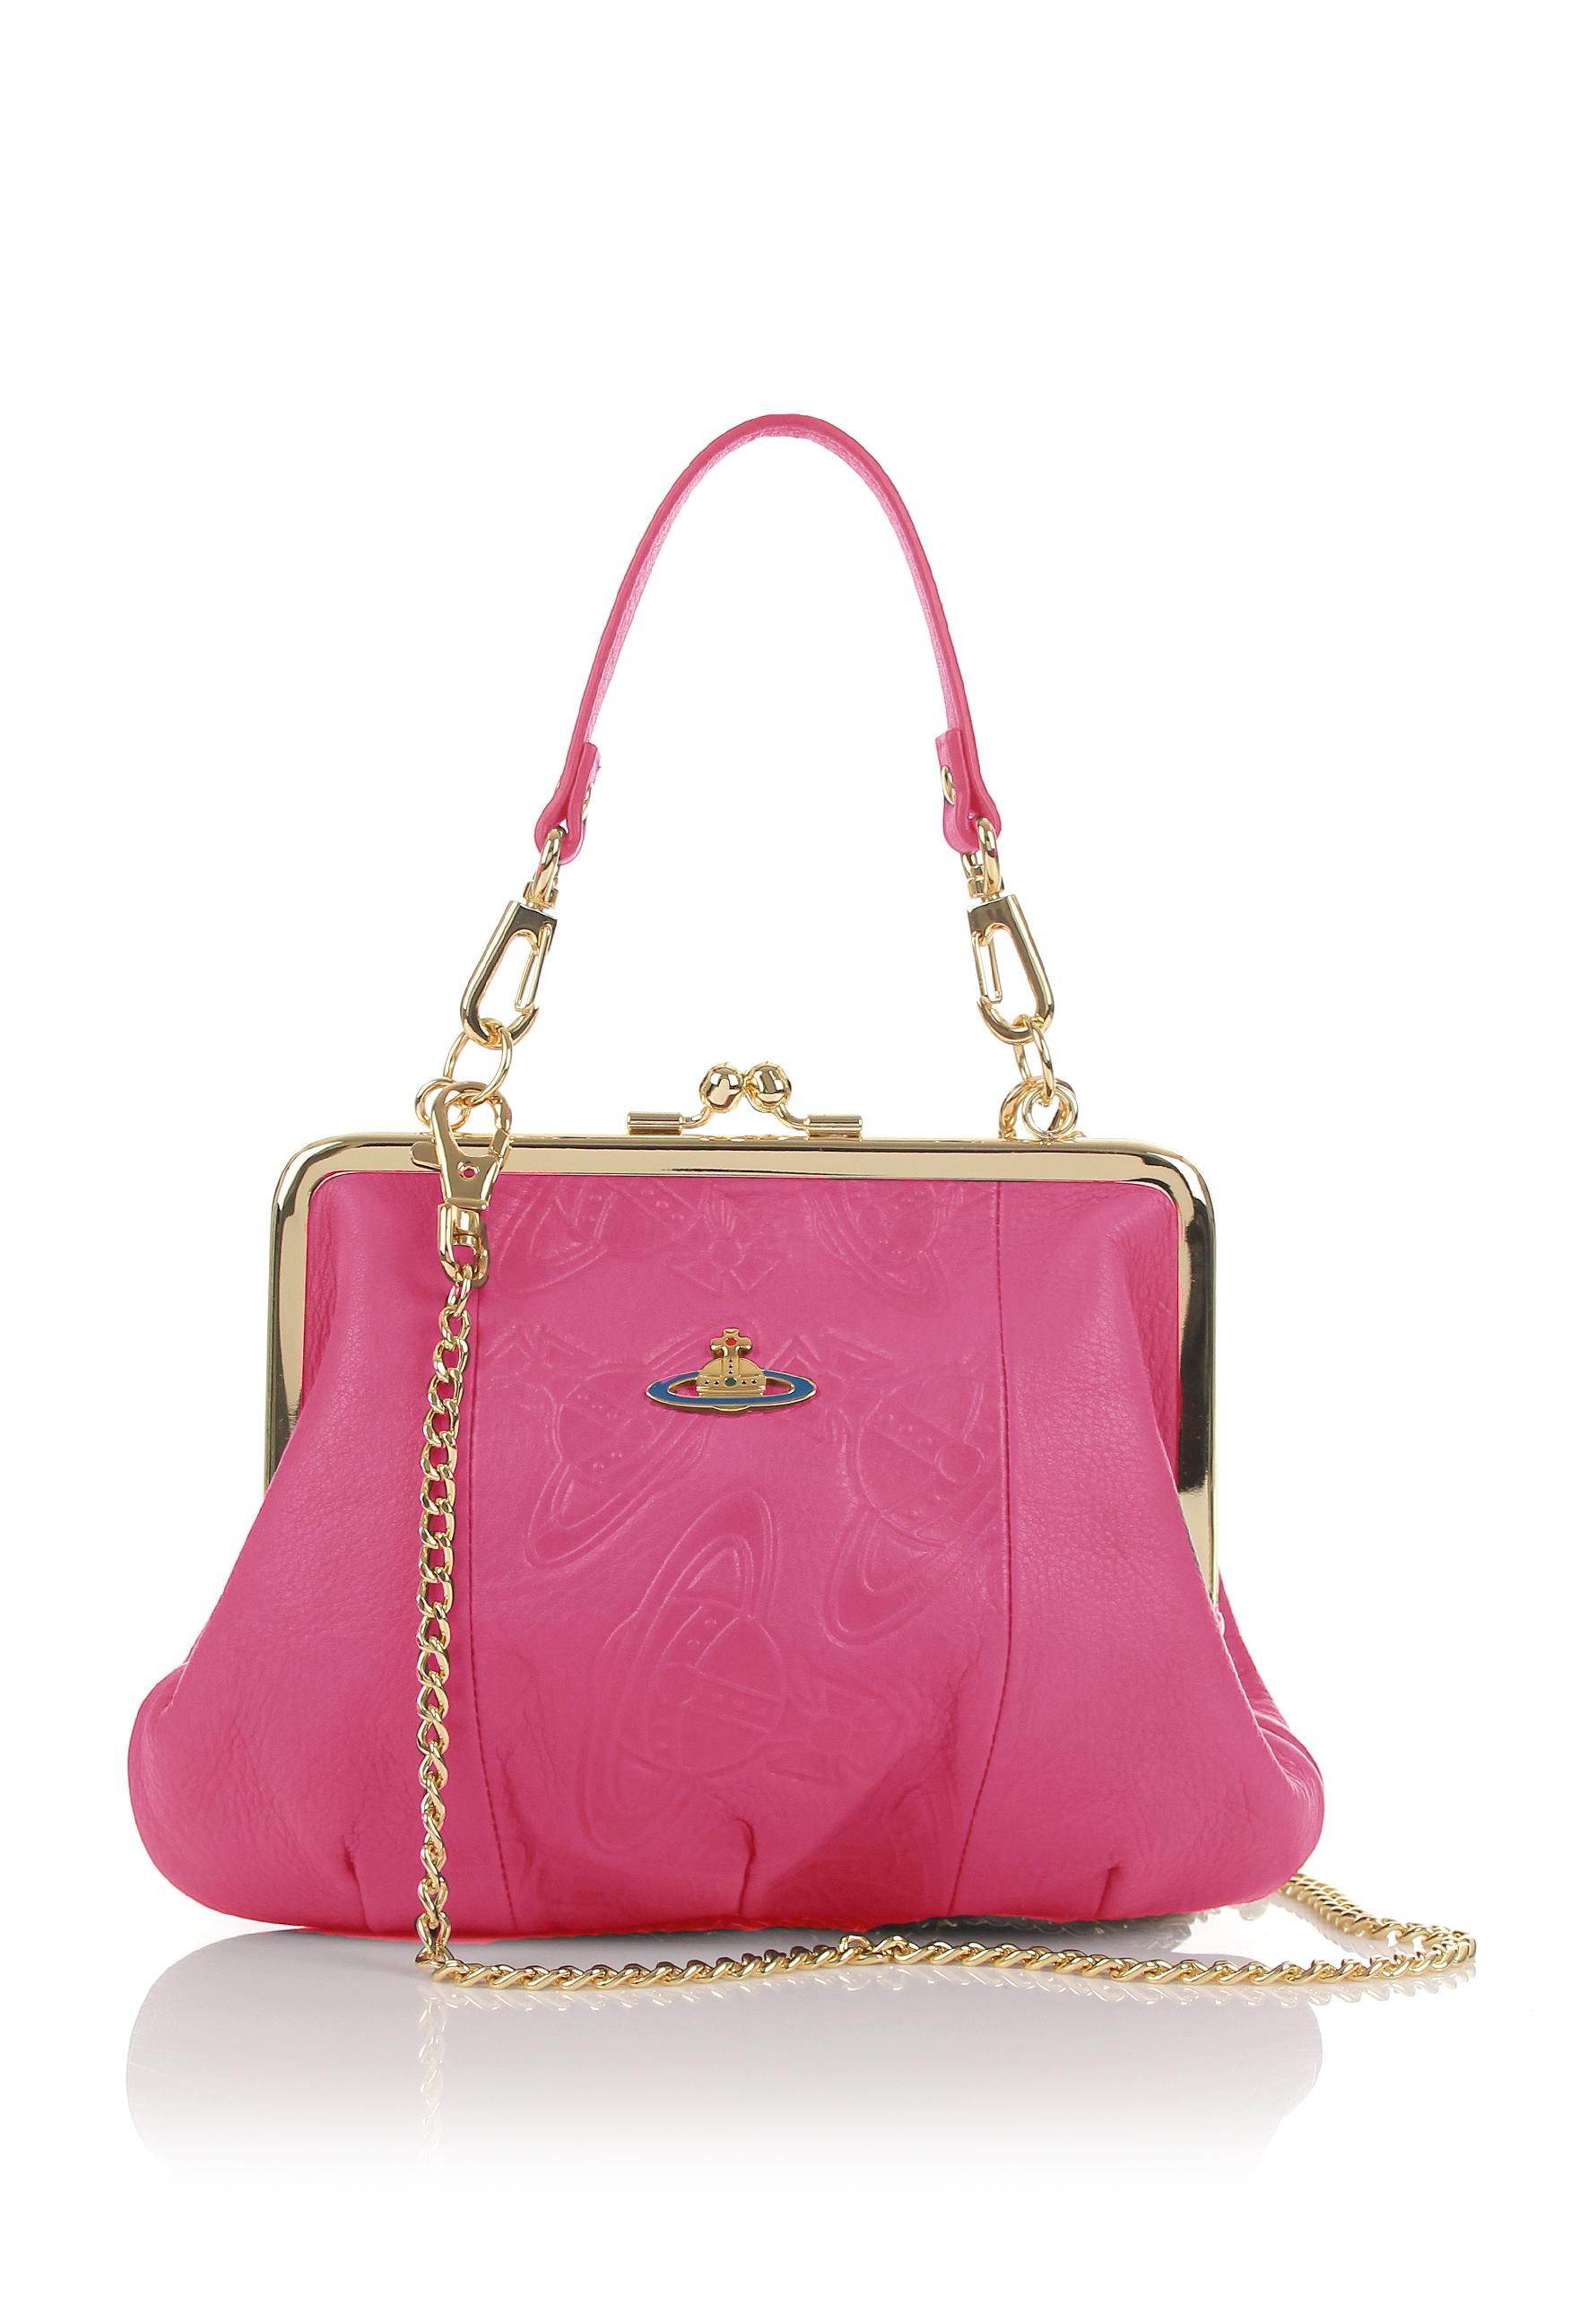 d21c5928ba72 Lyst - Vivienne Westwood Cardiff 3655 Evening Bag Pink in Pink